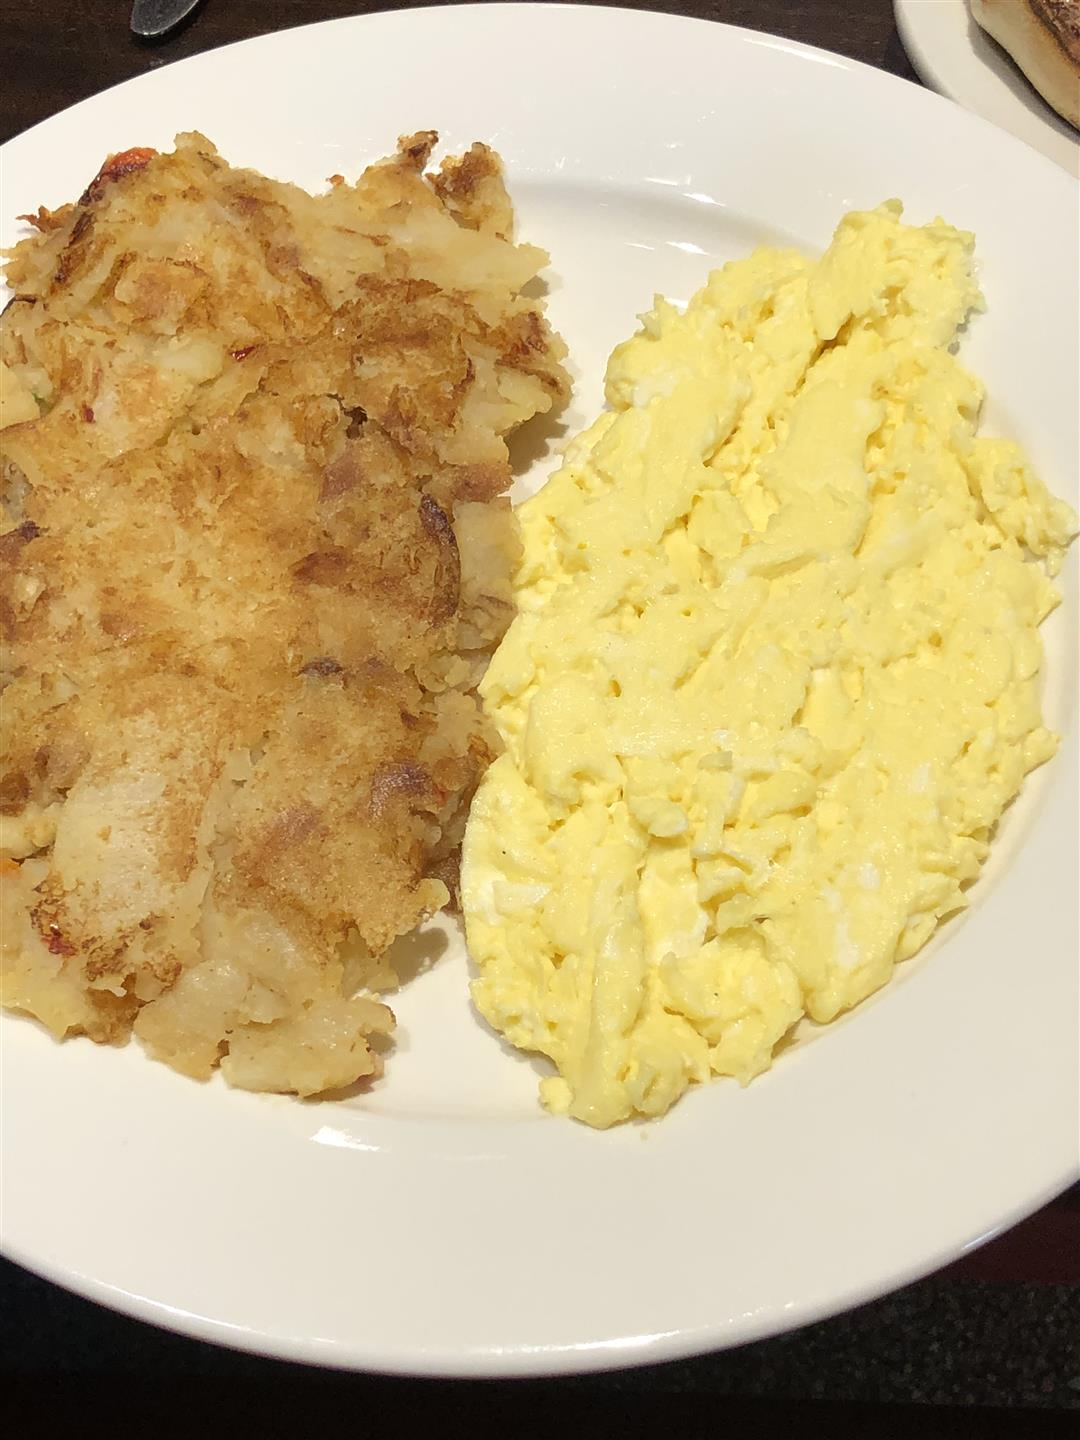 hash browns, and scrambled eggs on a plate